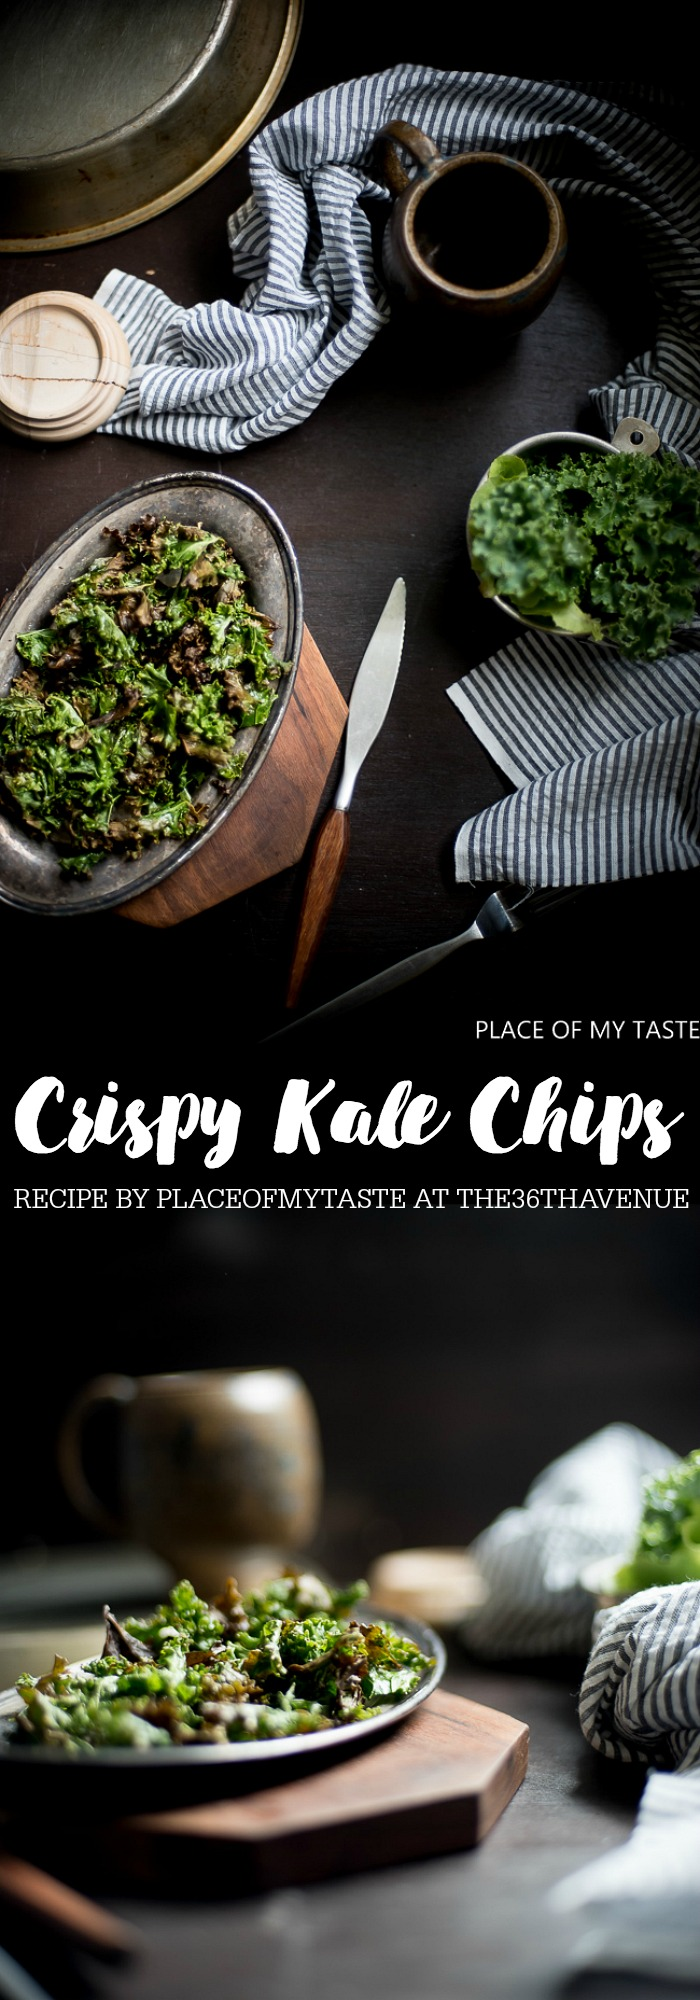 Kale is a fantastic source of many vitamins. These Crispy Kale Chips is one of the easiest snacks to make! Also makes the perfect appetizer. So delicious!